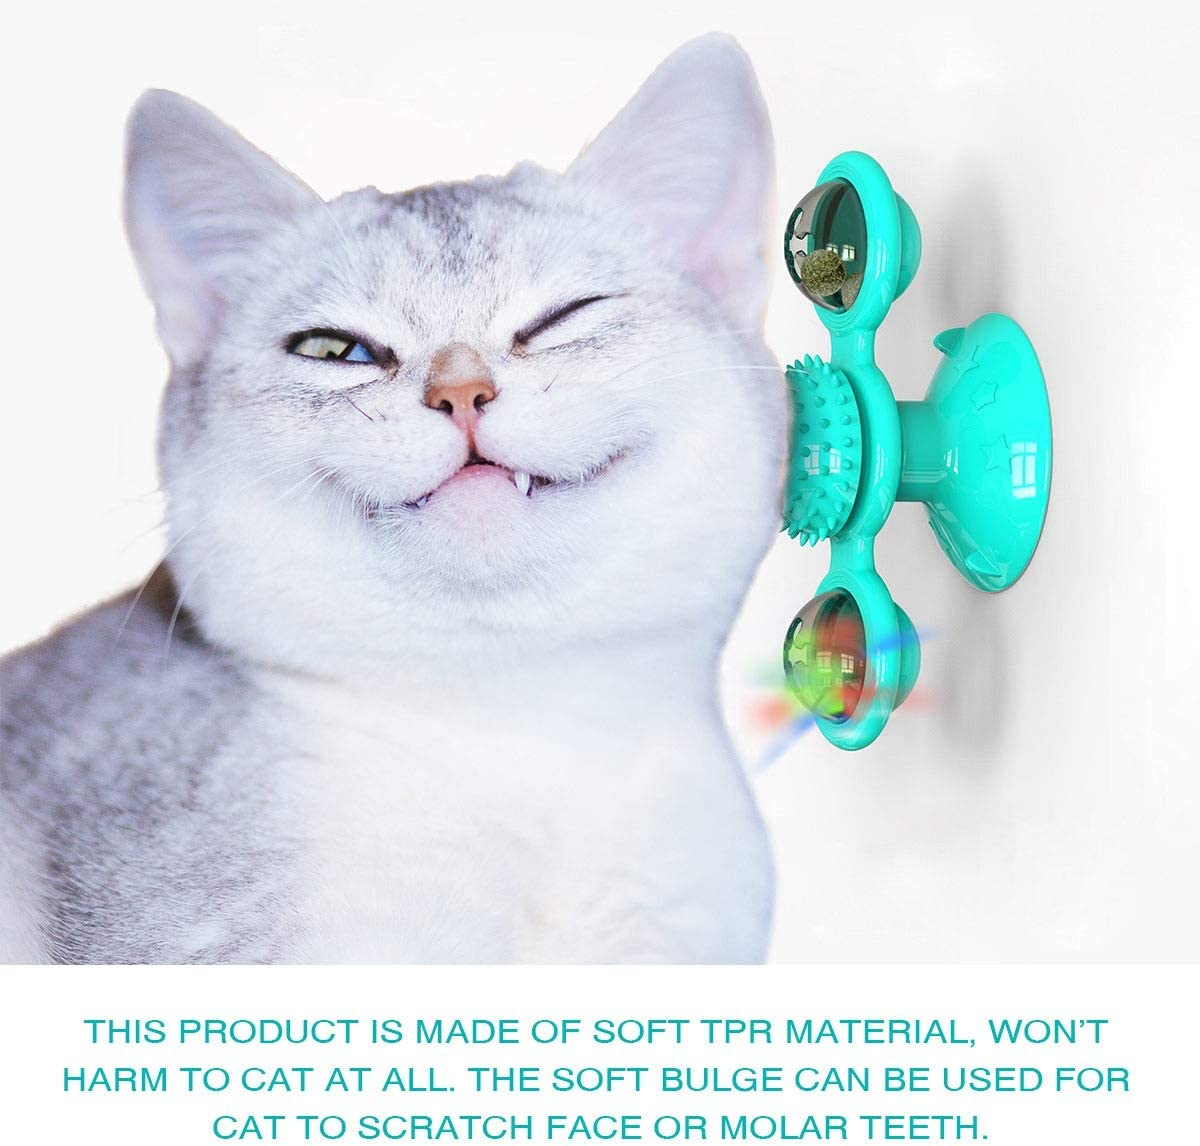 KZOBYD Windmill Cat Toy Turntable Teasing Toys with LED//Catnip Ball Kitten Interactive Toy with Suction Cup Base Washable Rotating Massage Scratching Tickle Brush Toys for Cats